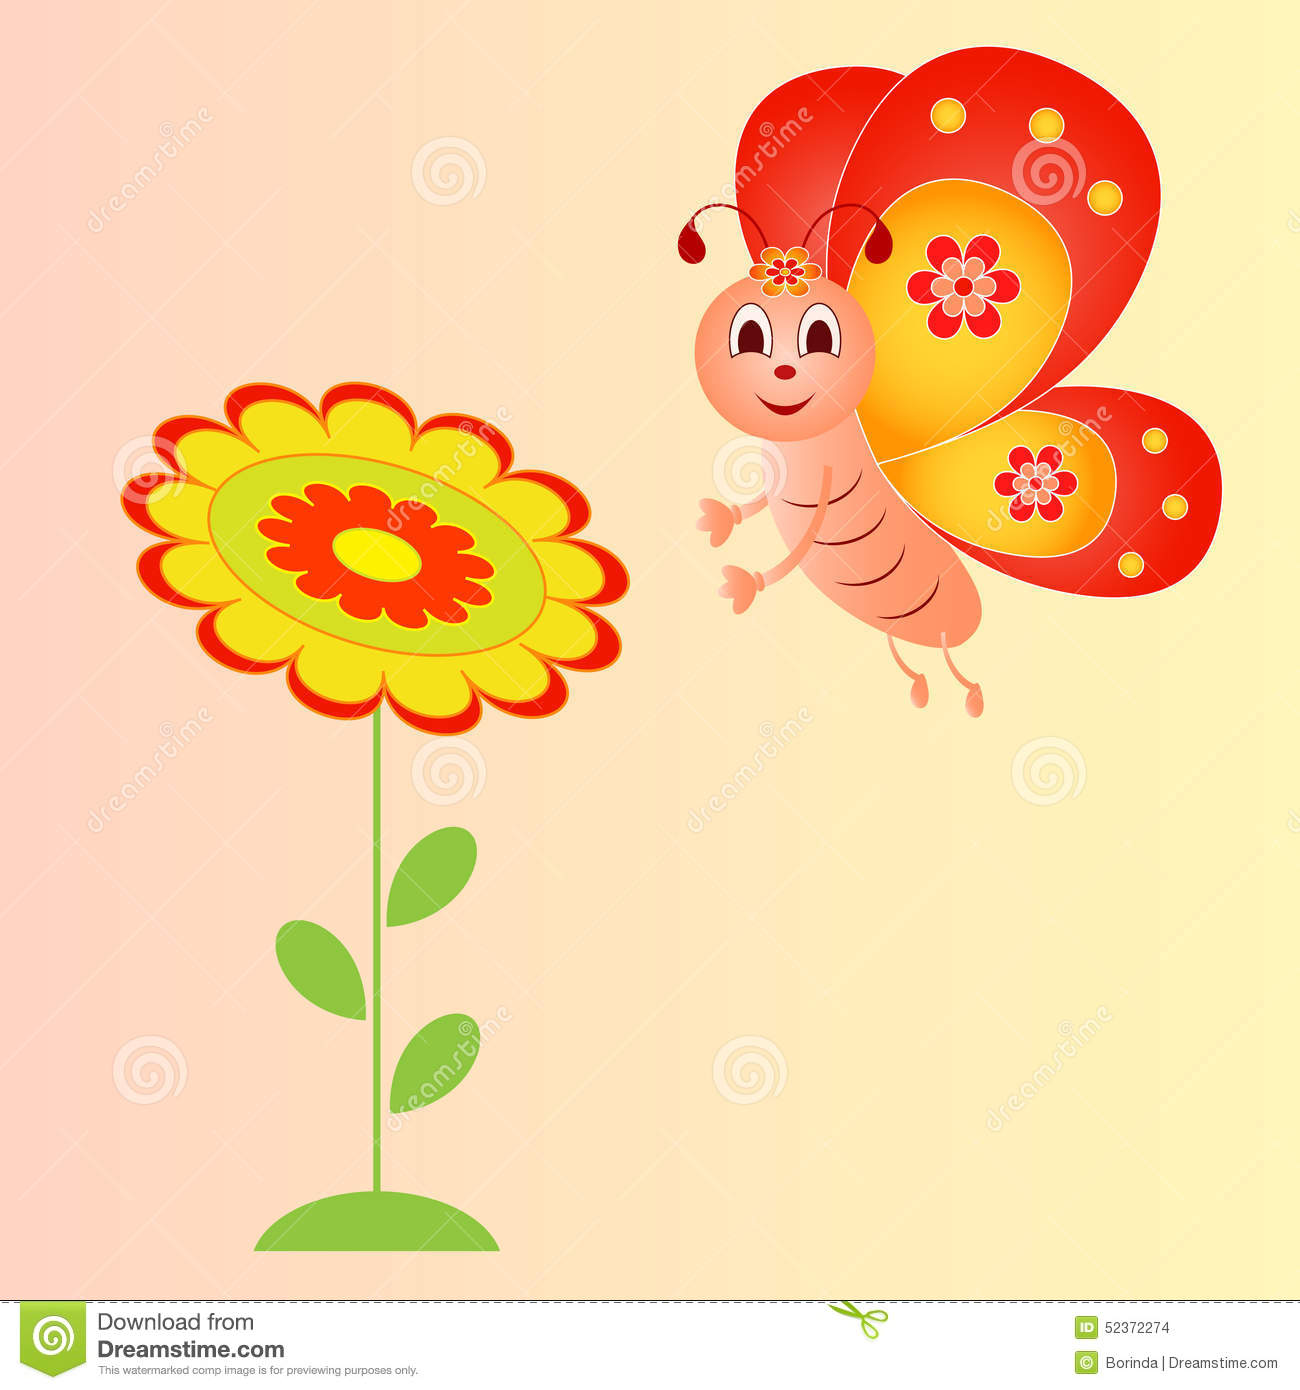 Flower And Butterfly Illustration On Pink Background Illustration